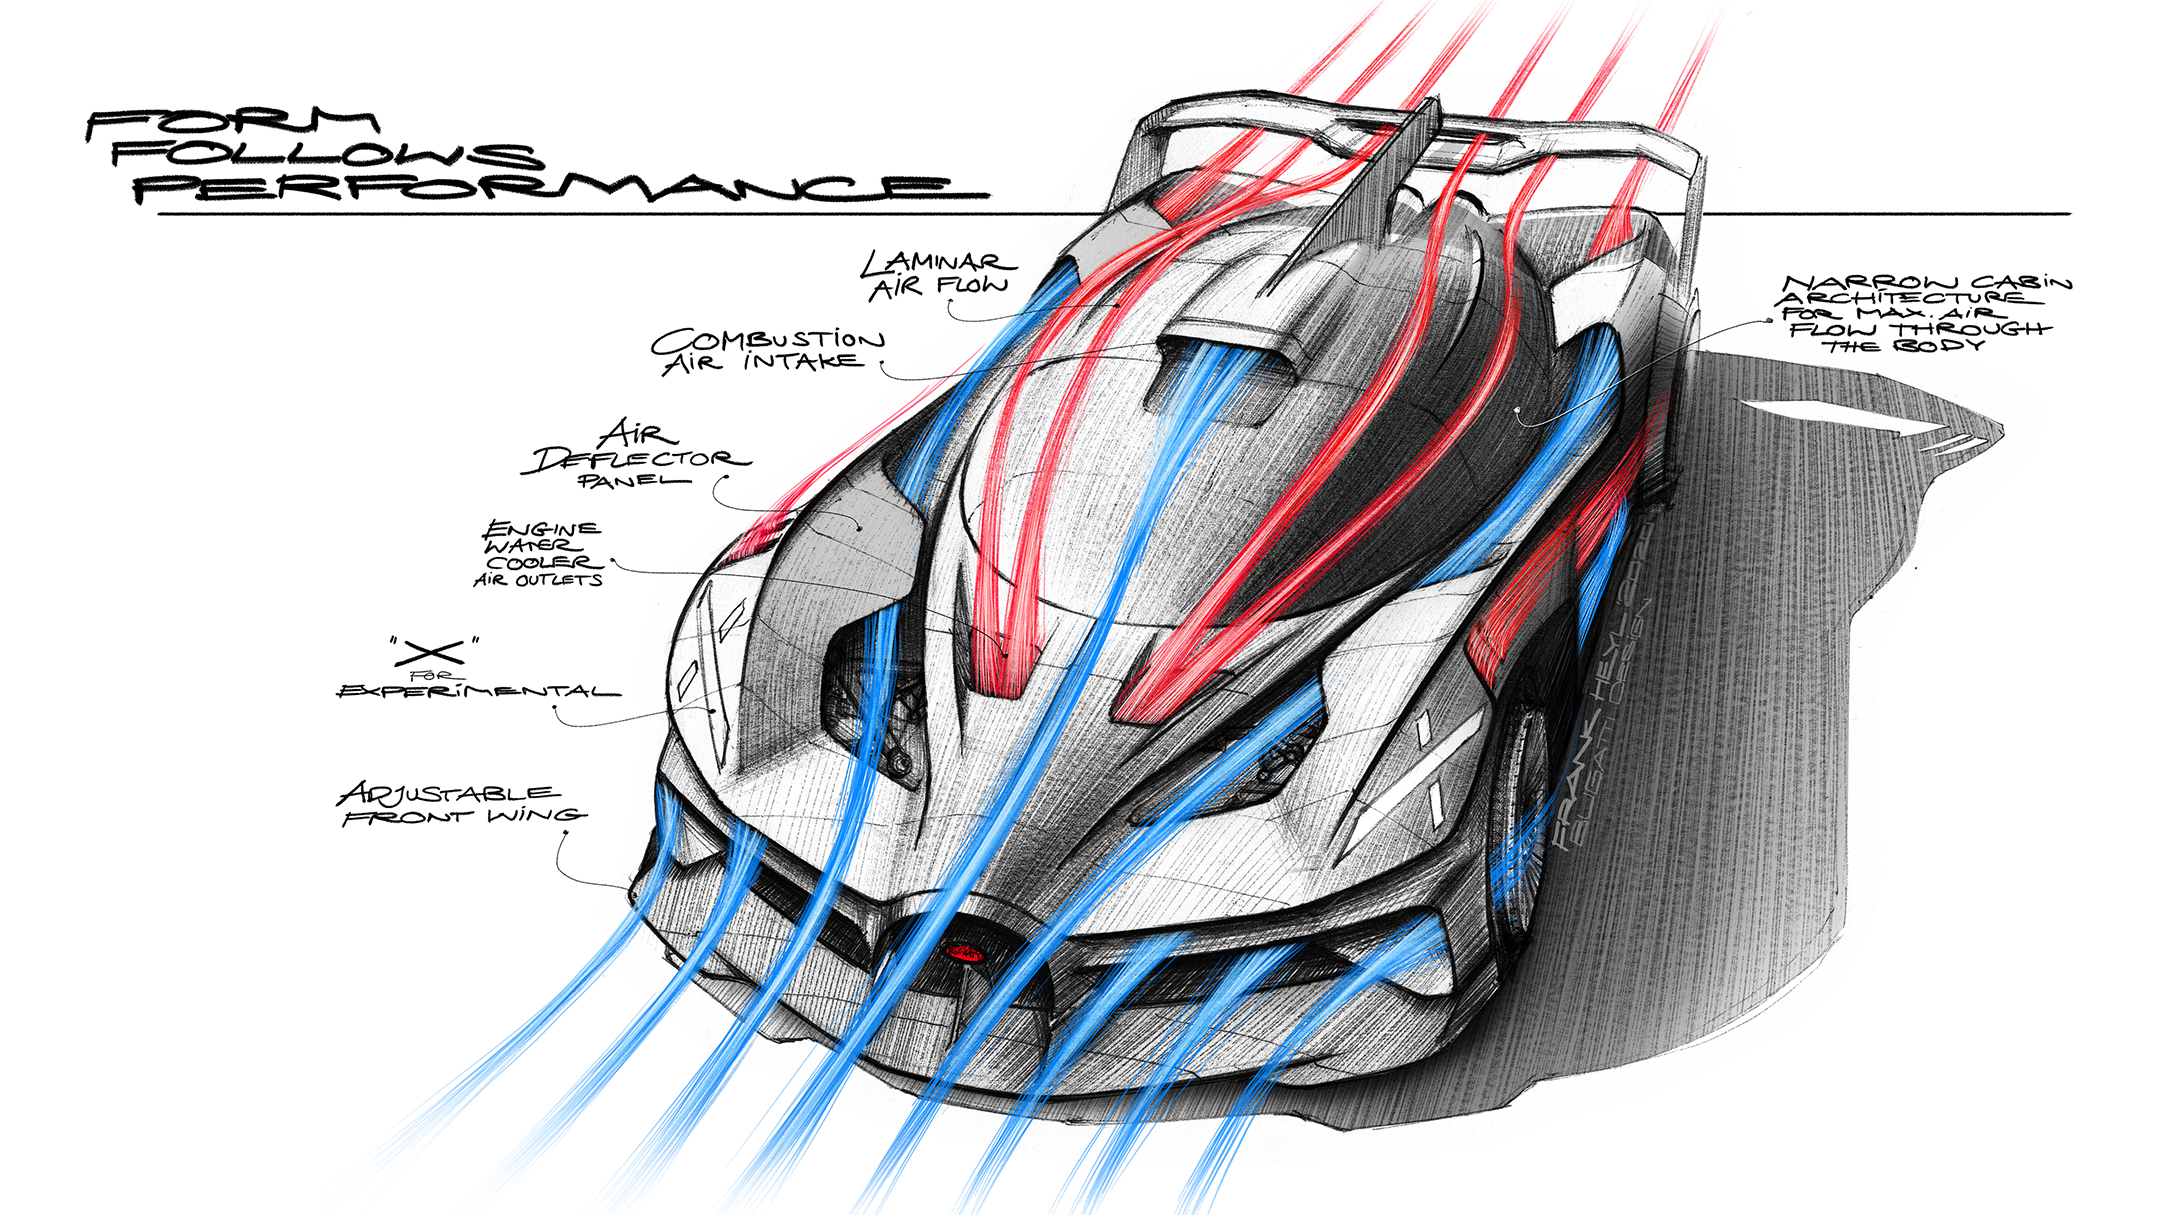 Bugatti Bolide - 2020 - sketch - front side-face / profil avant - form follows performance